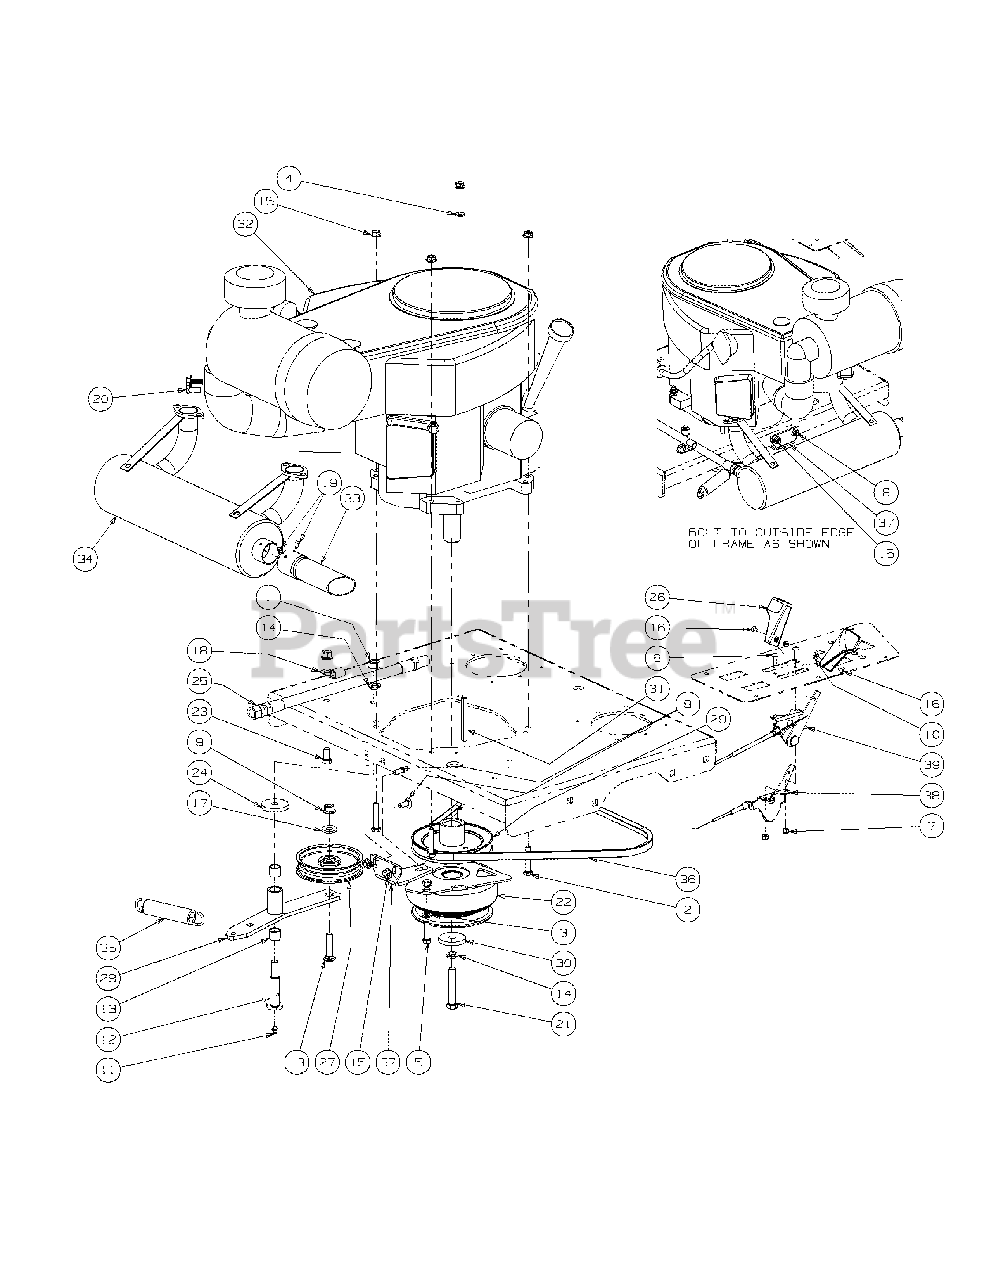 Cub Cadet Parts on the Engine Assembly Diagram for M54-KW ...